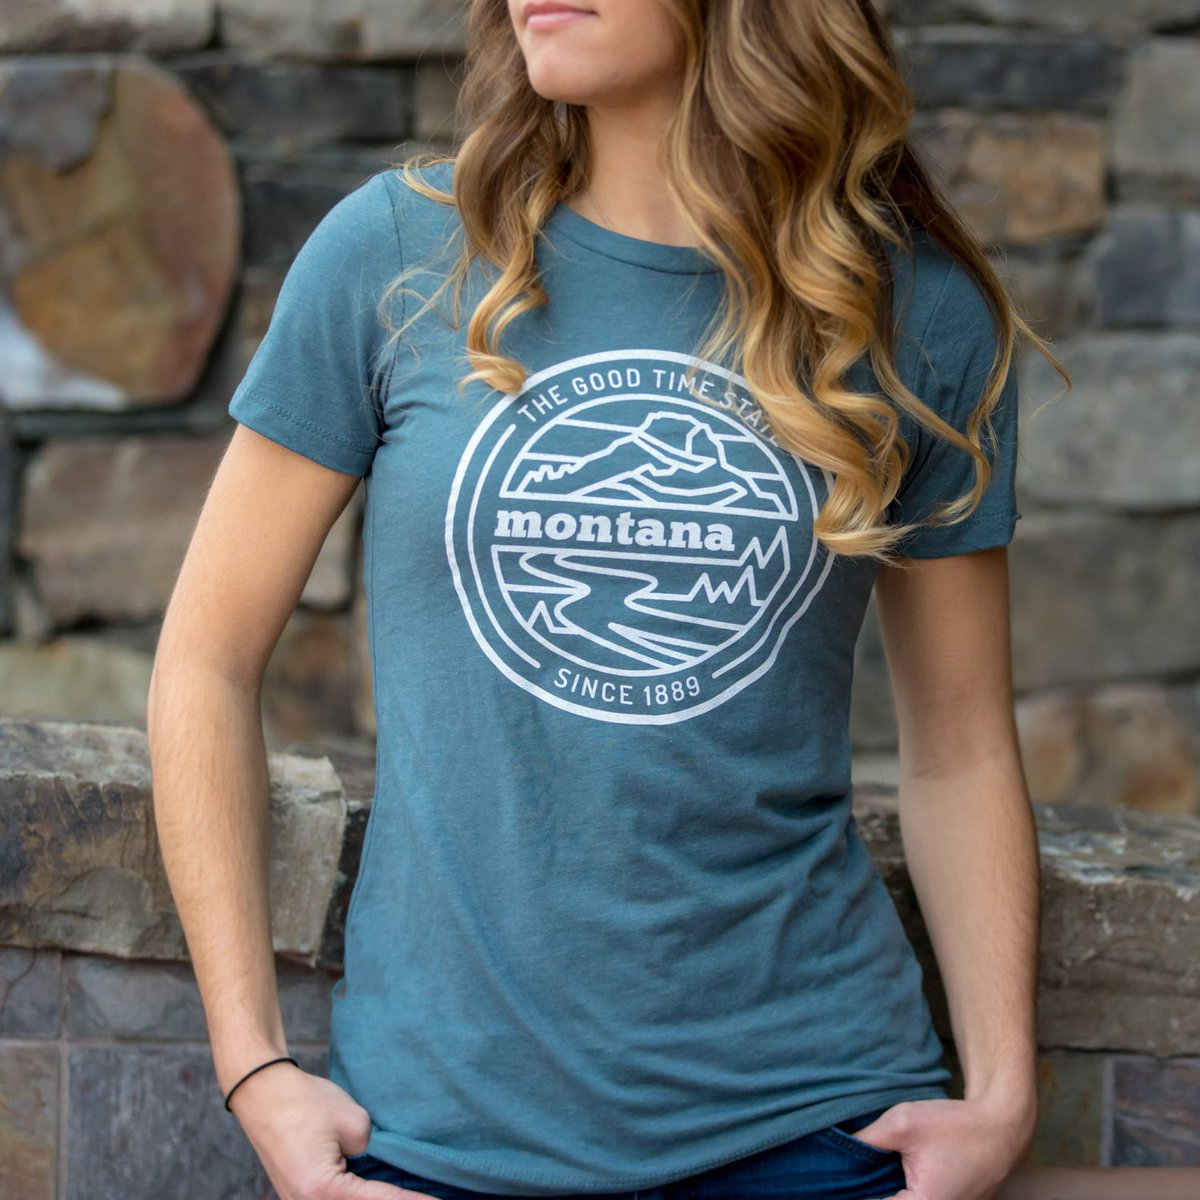 Montana Shirt Co On Twitter To Us Montana Is Truly The Good